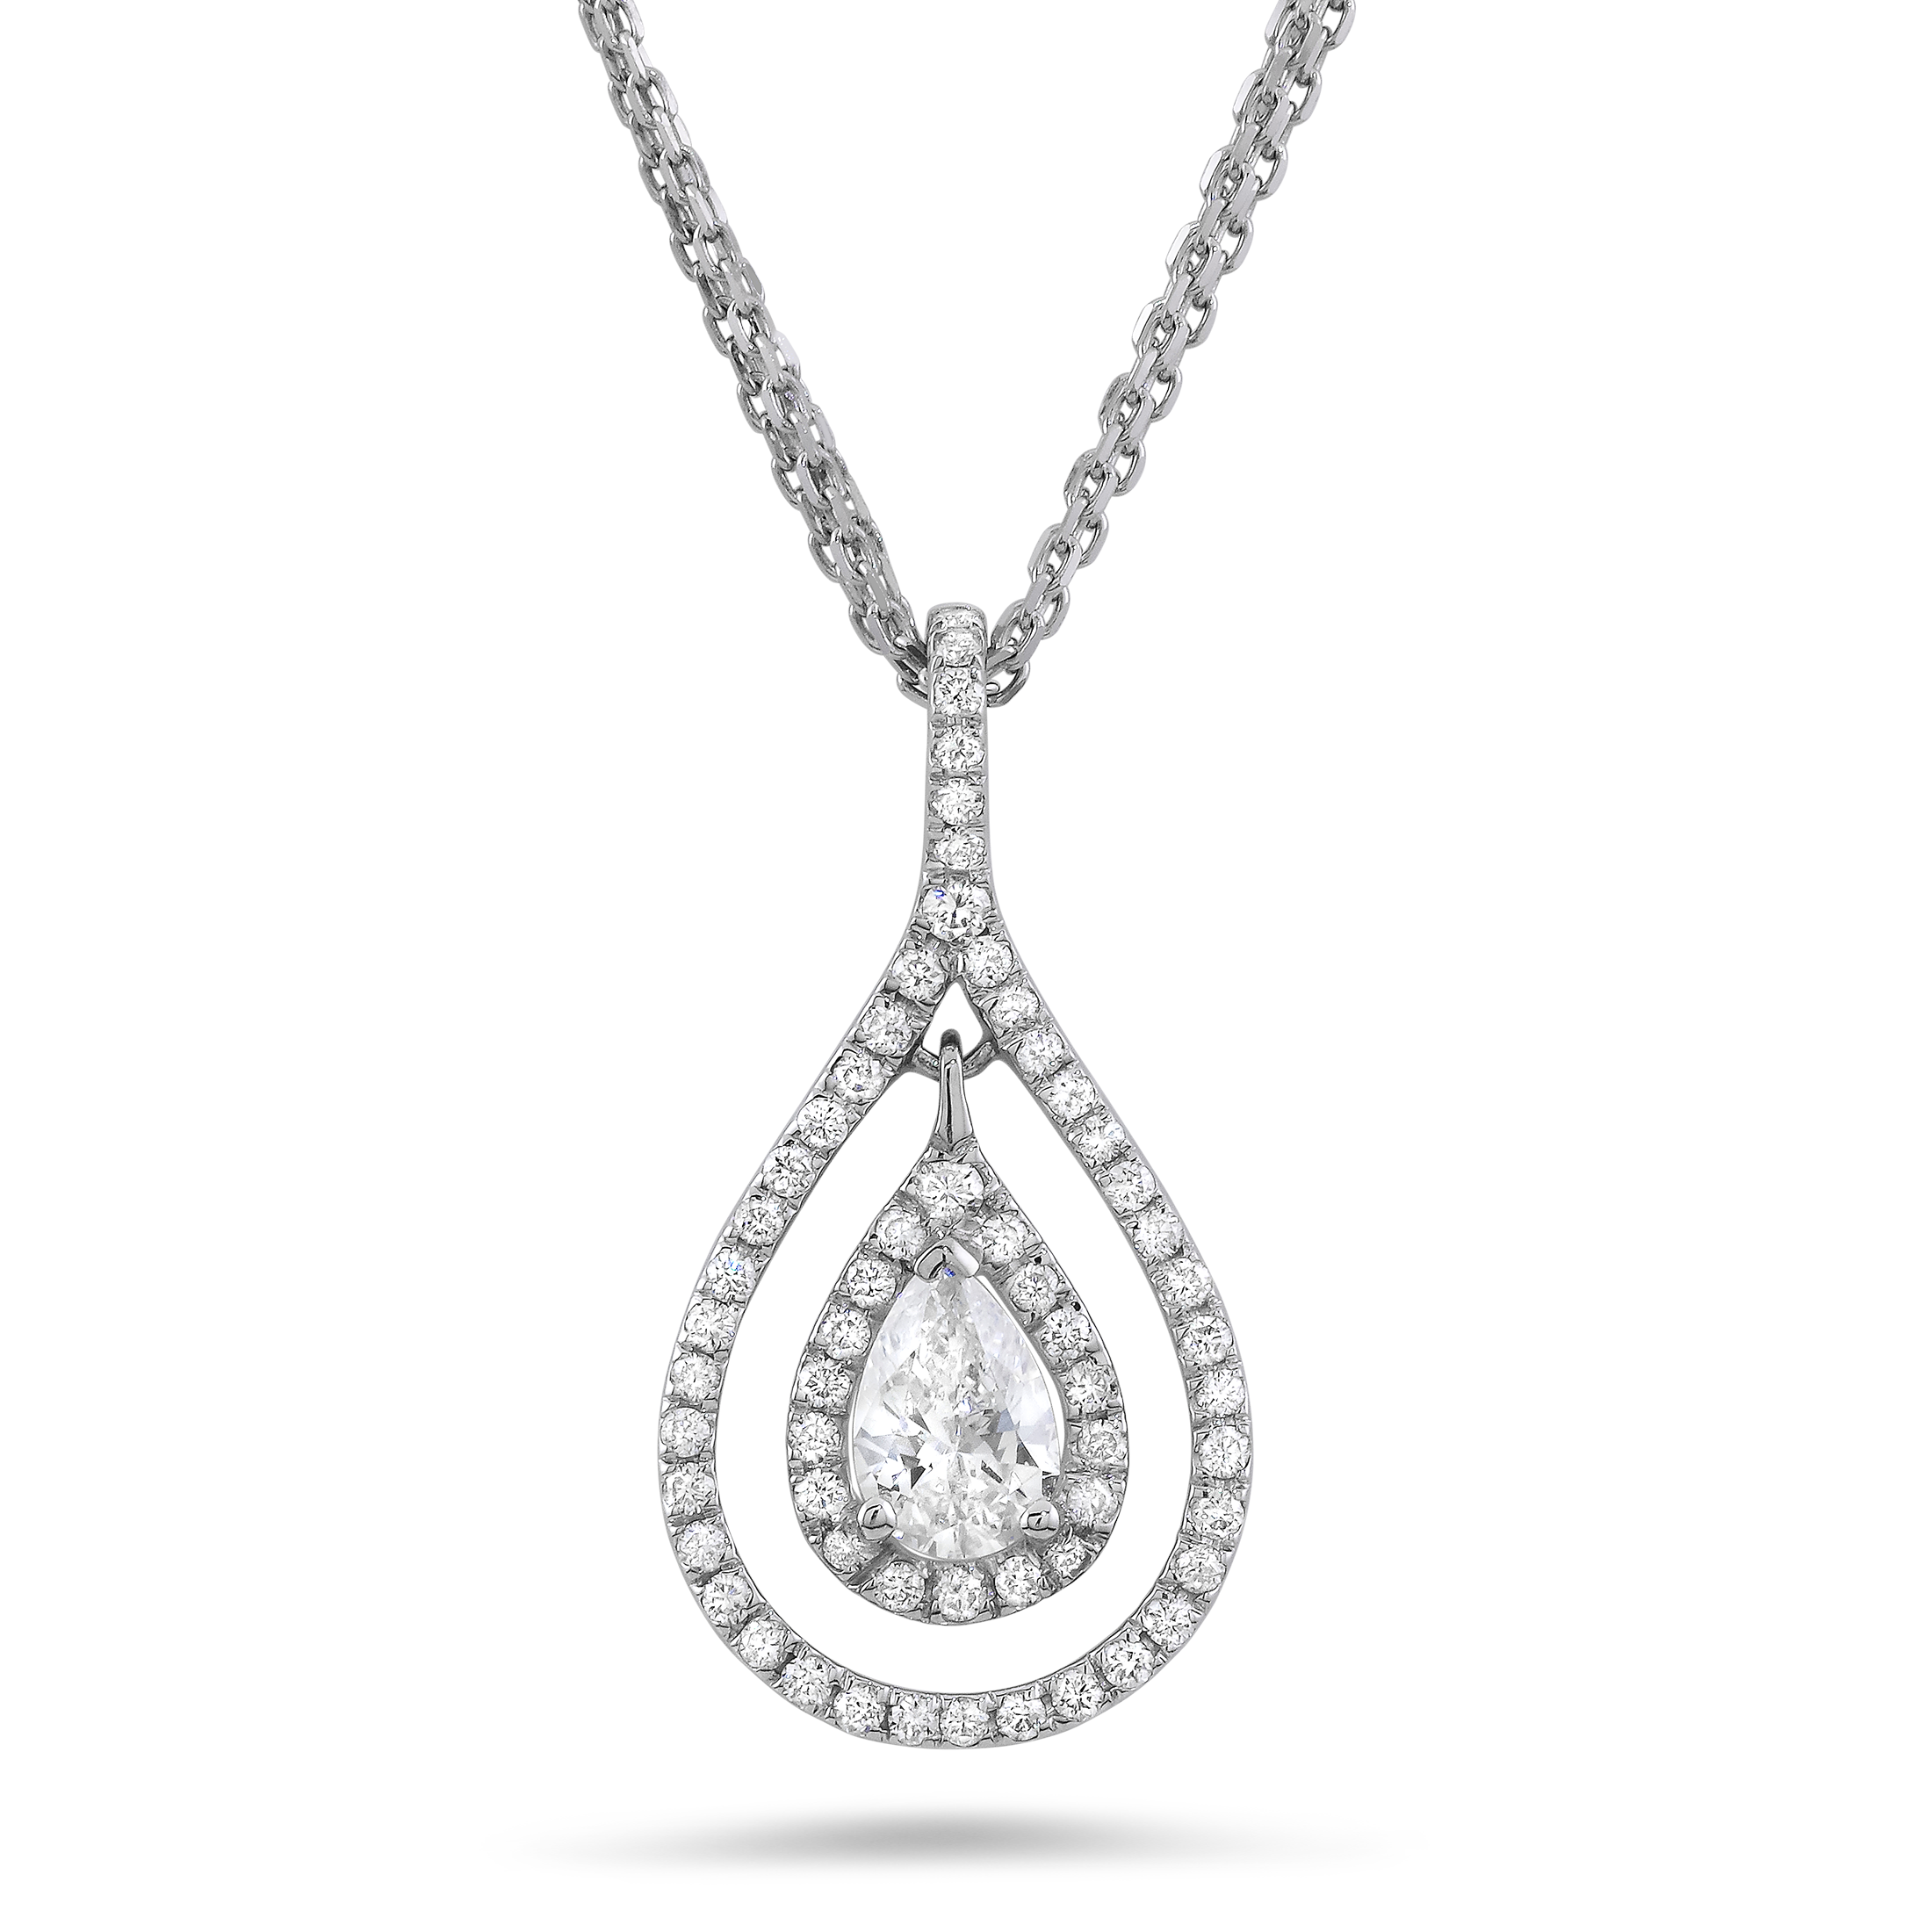 Diamond Necklace PNG - 74797